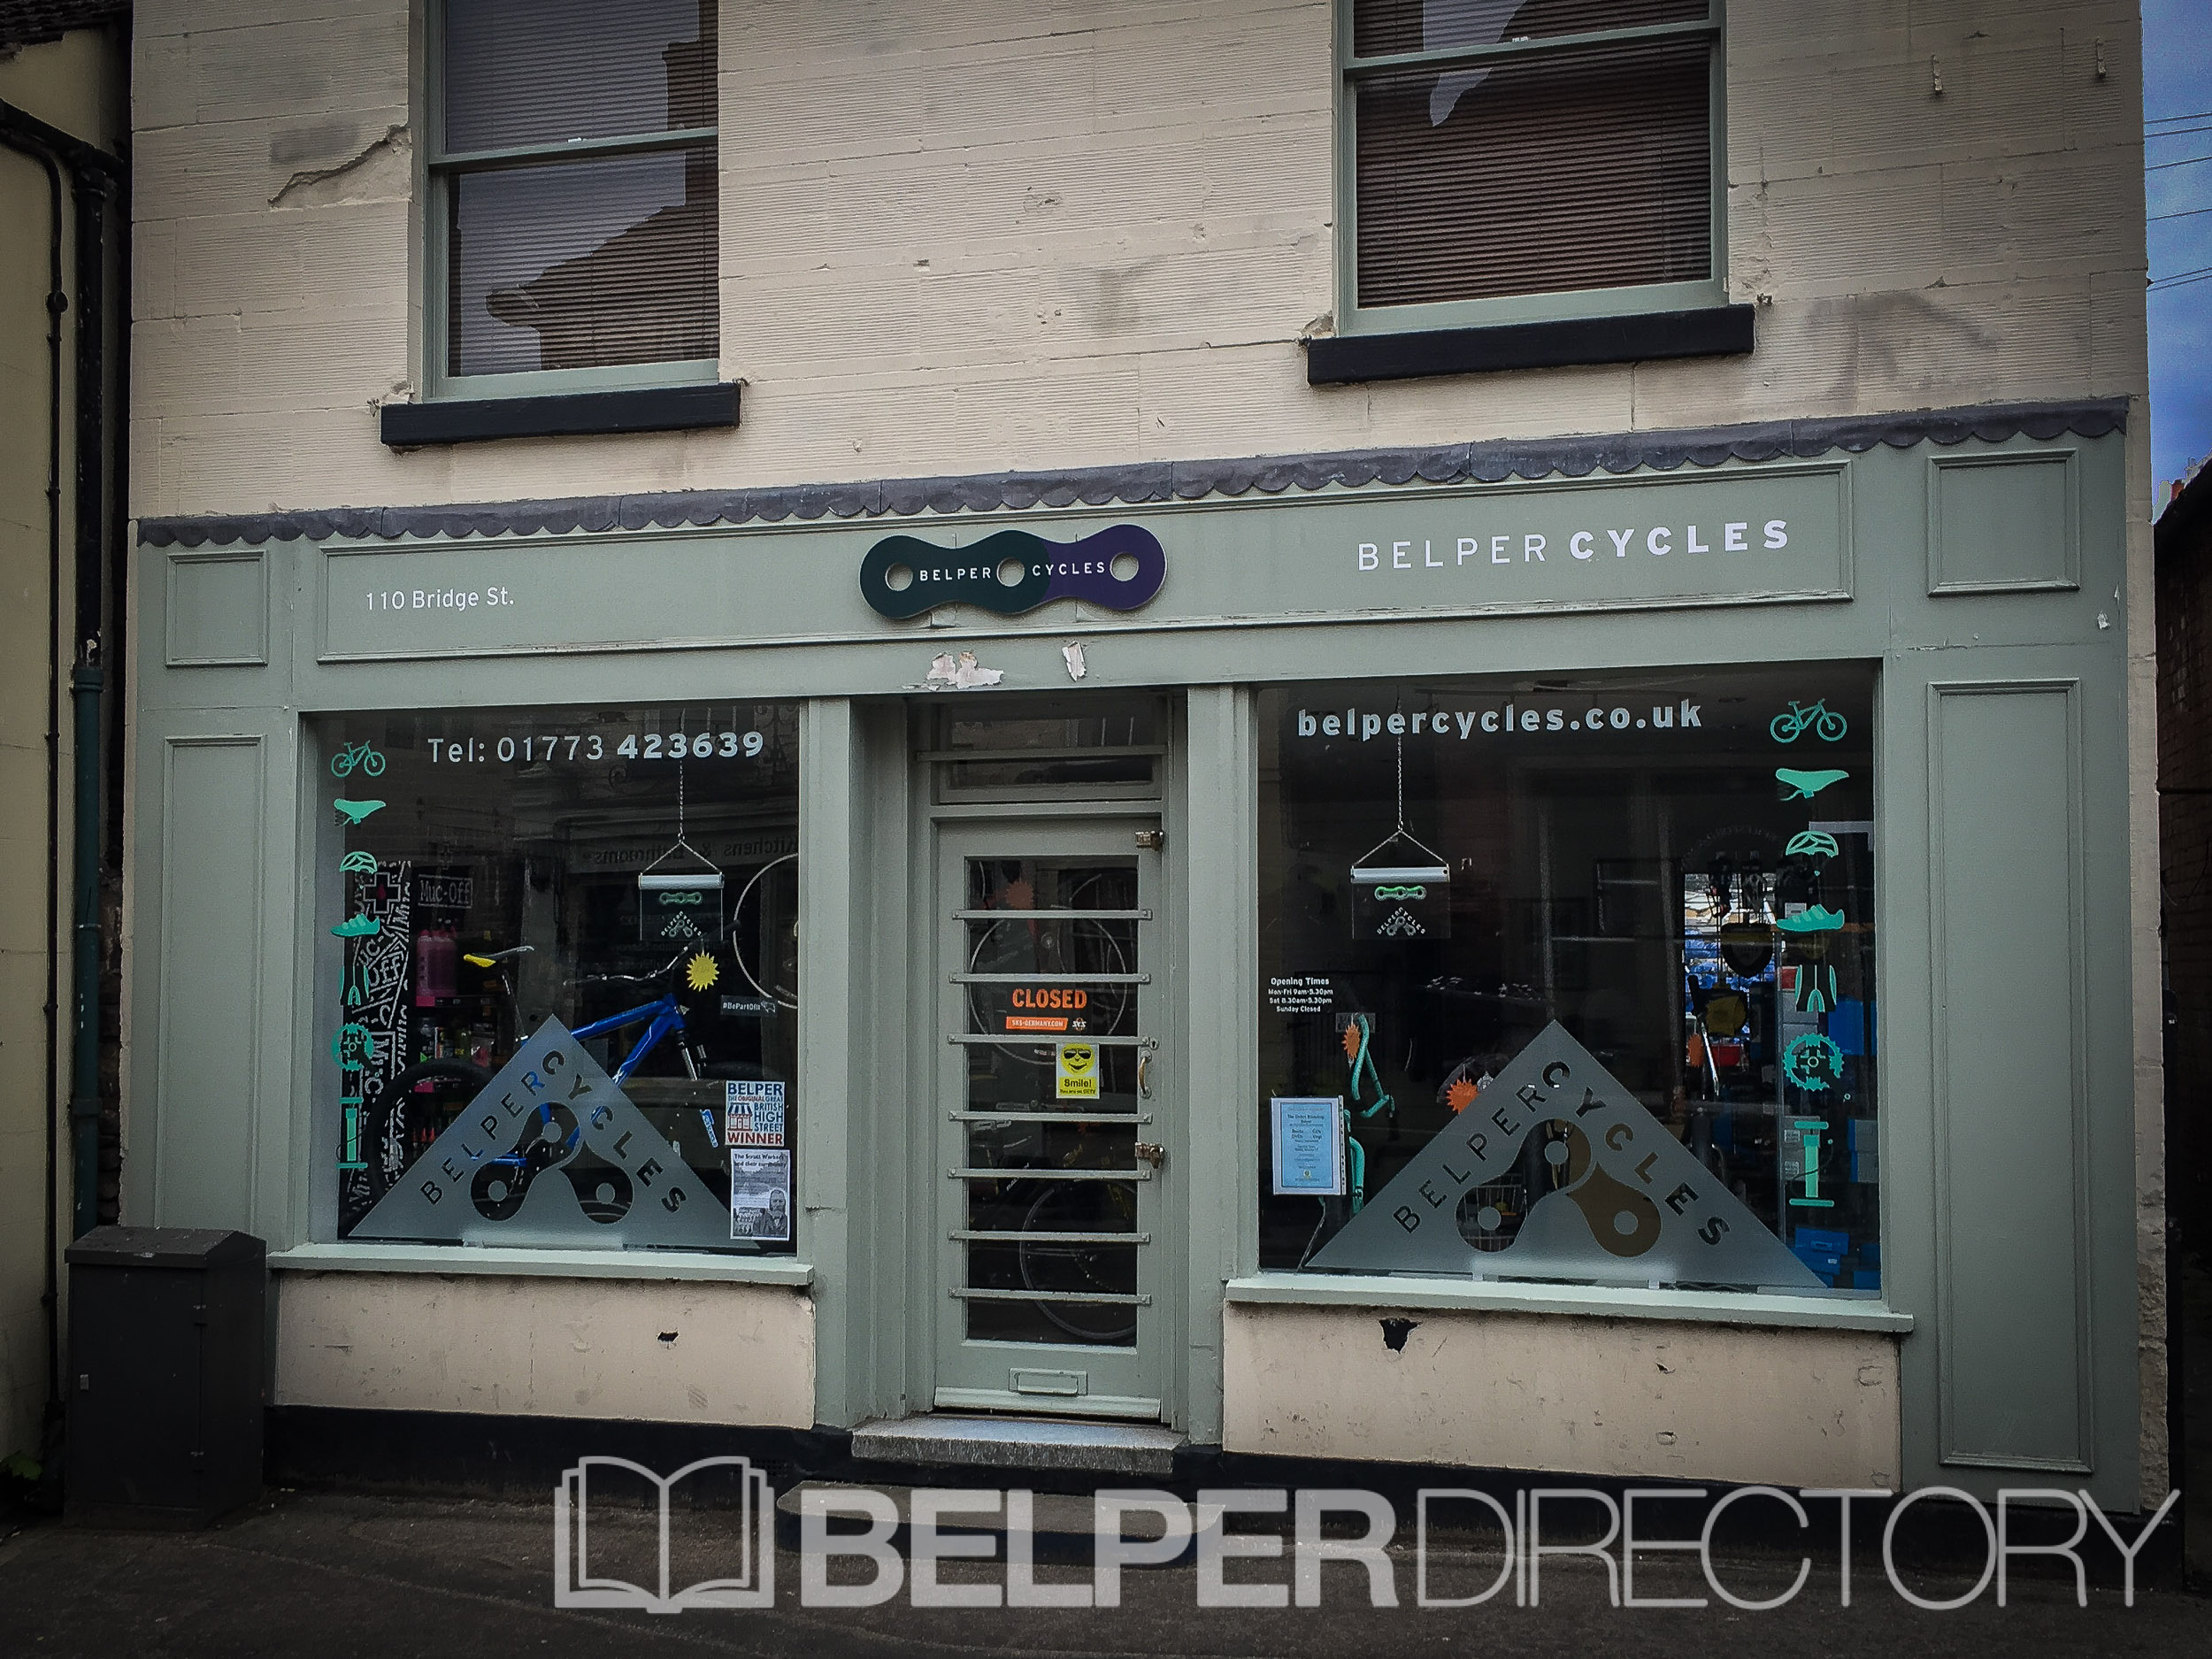 Belper Cycles on Inter Search